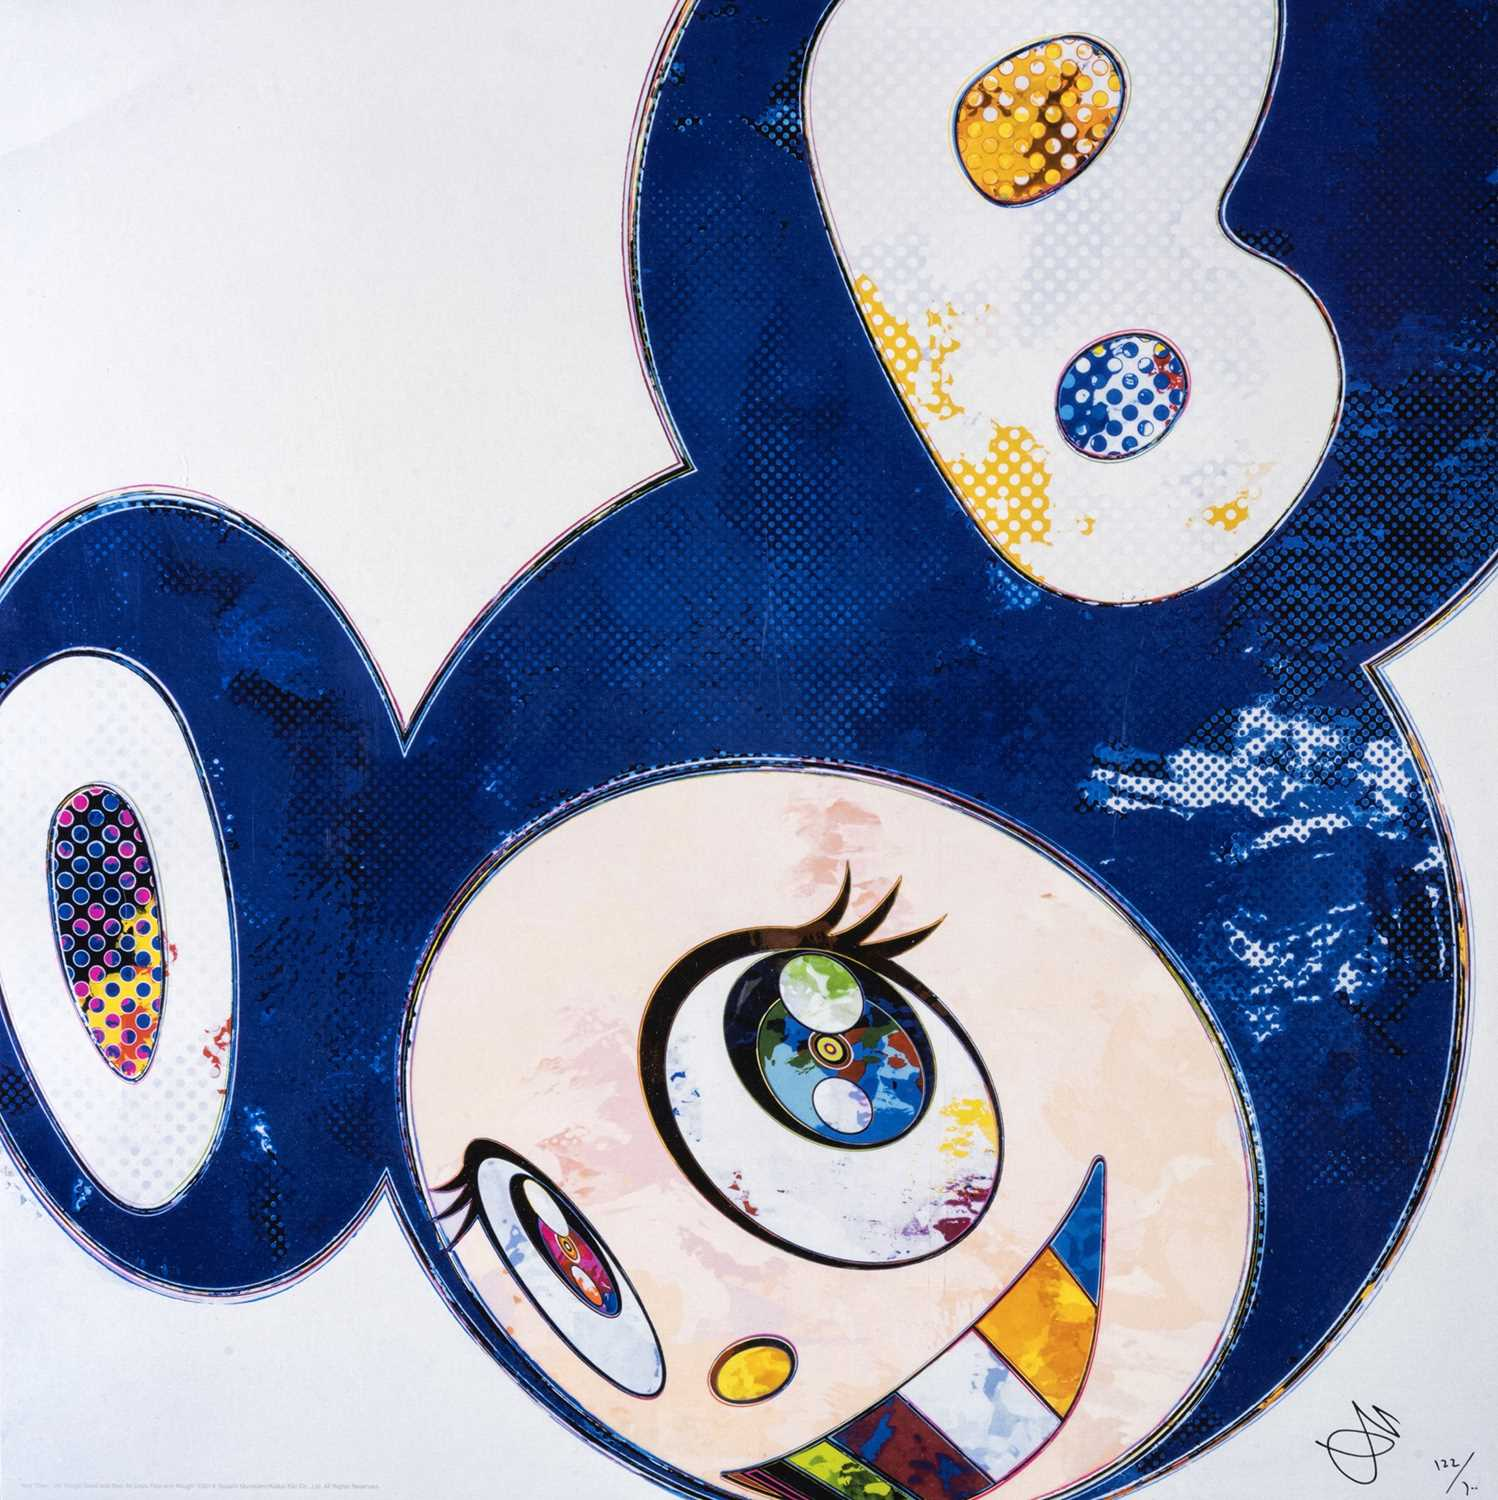 Lot 46 - Takashi Murakami (Japanese 1962-), 'And Then...All Things Good And Bad, All Days Fine And Rough', 2014